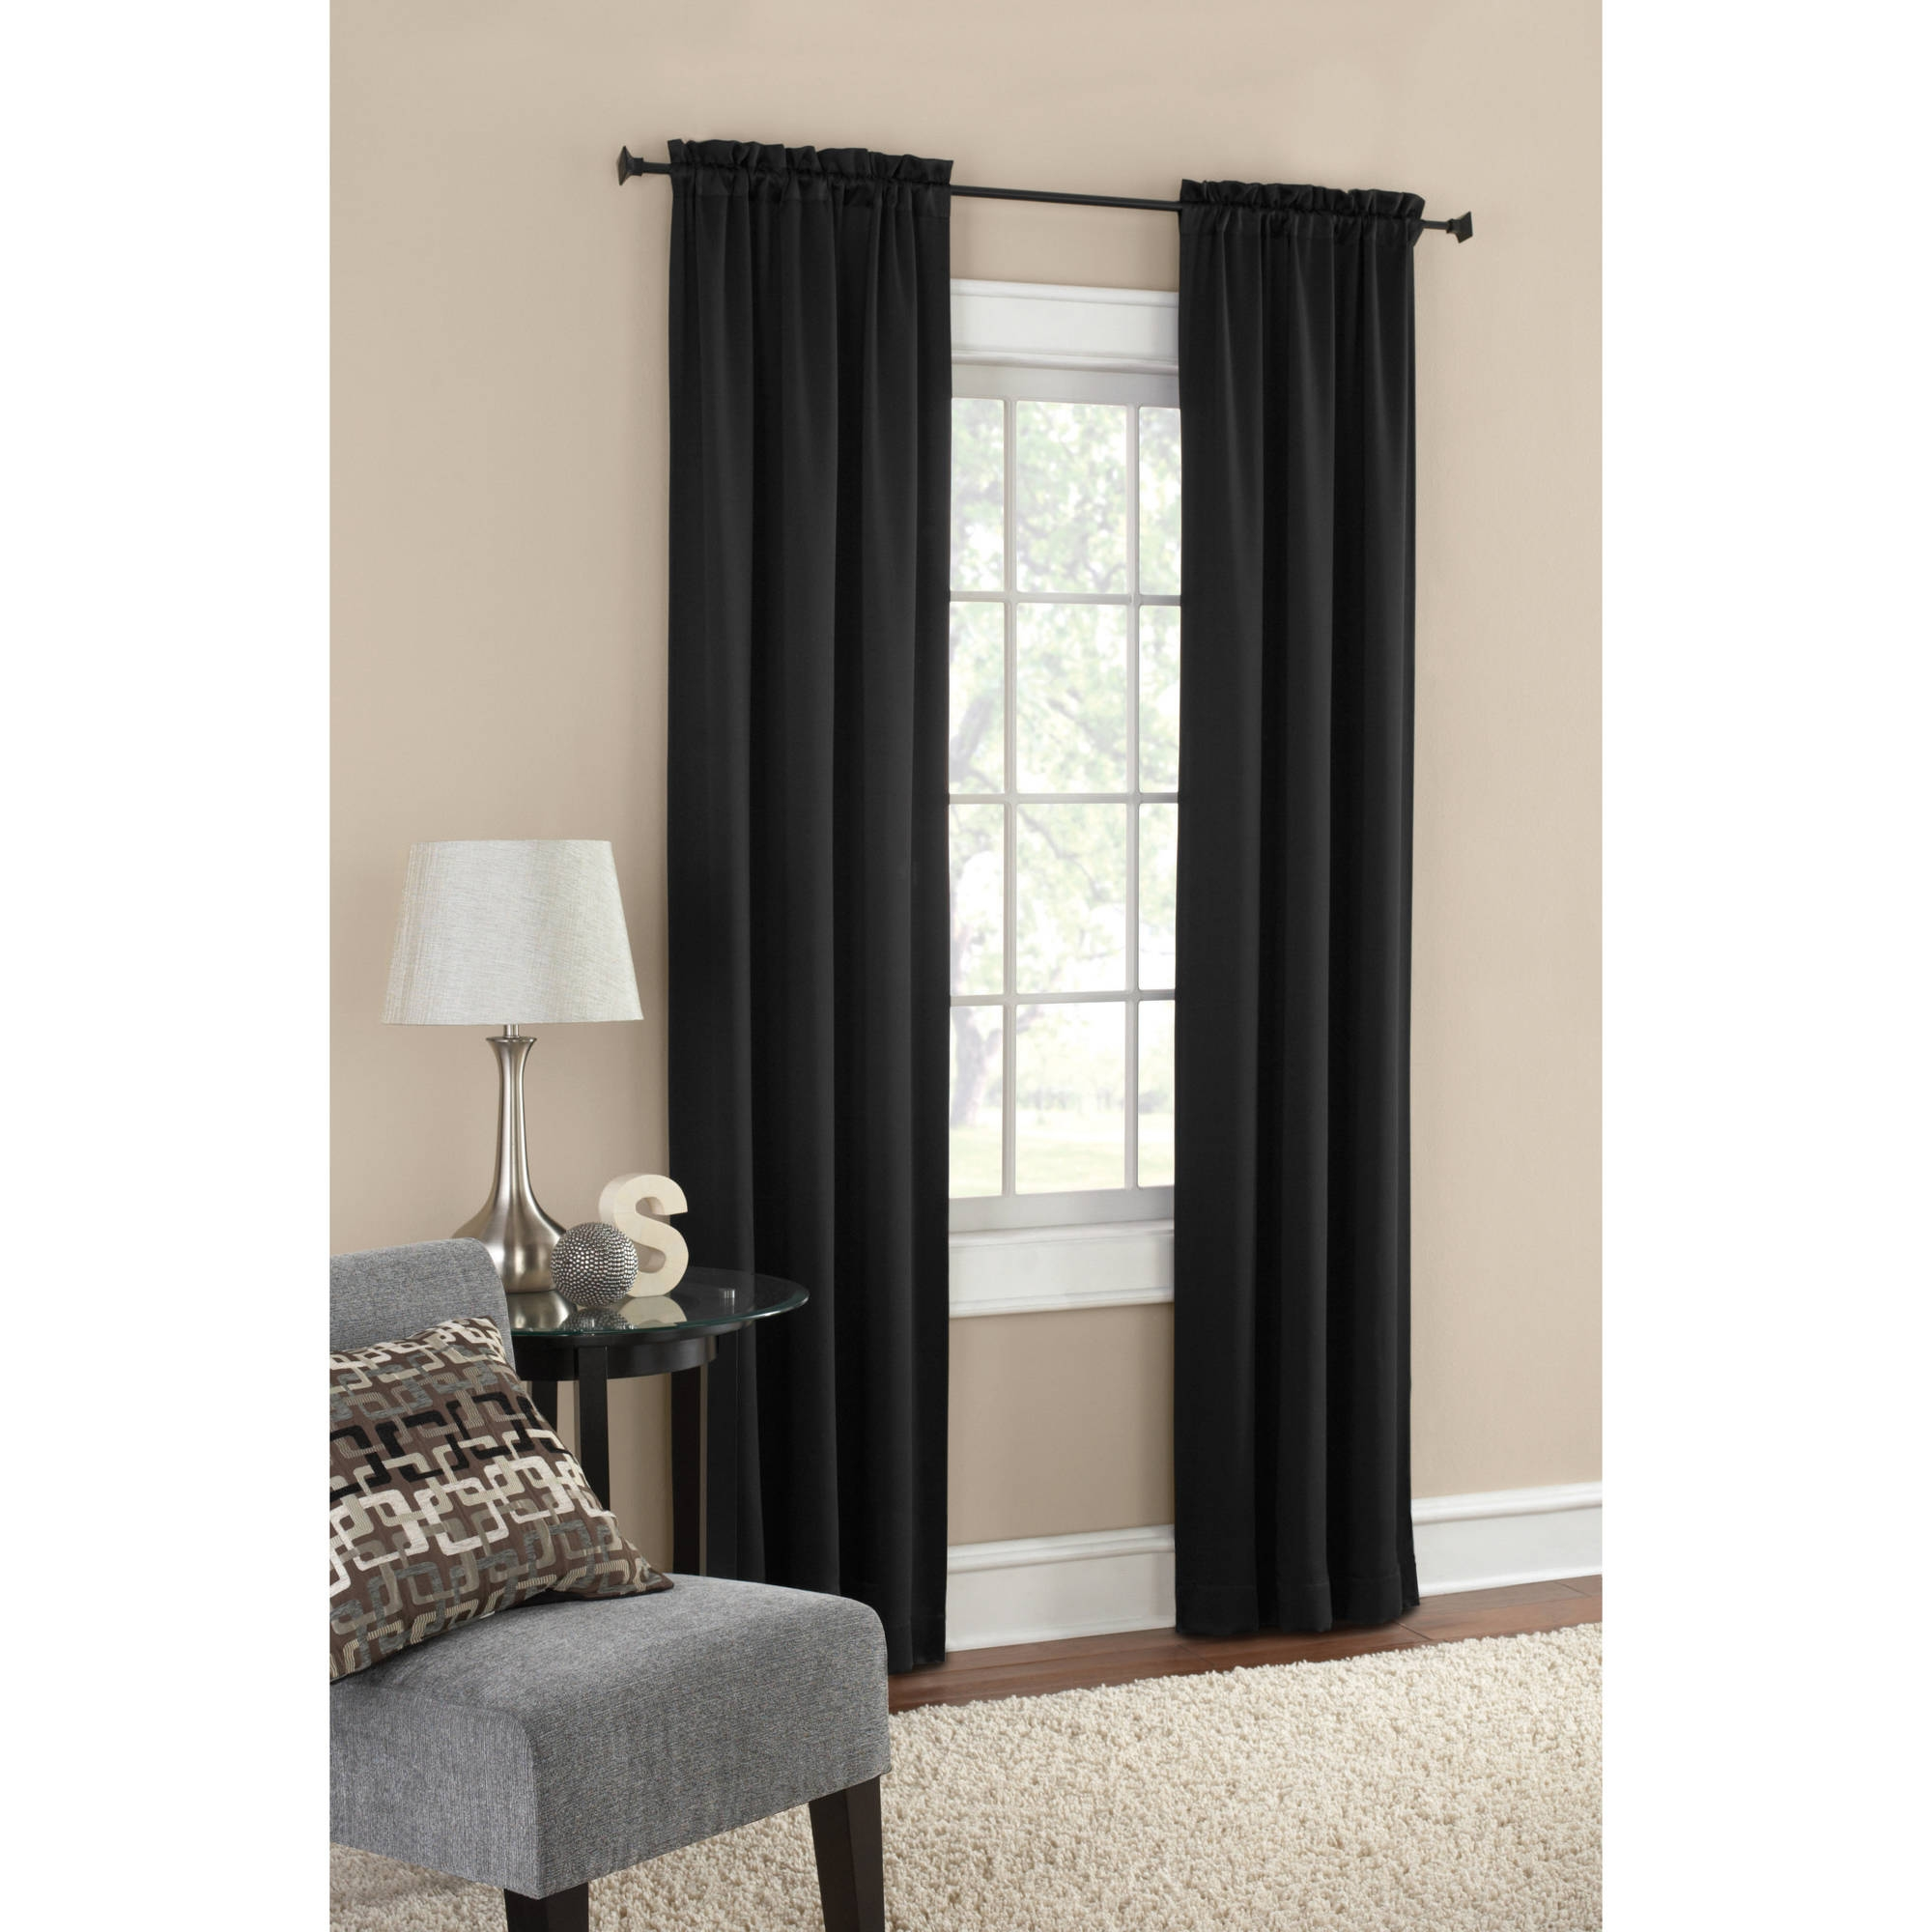 Energy Efficient Blackout Curtains Walmart With Regard To Patterned Blackout Curtains (View 14 of 25)